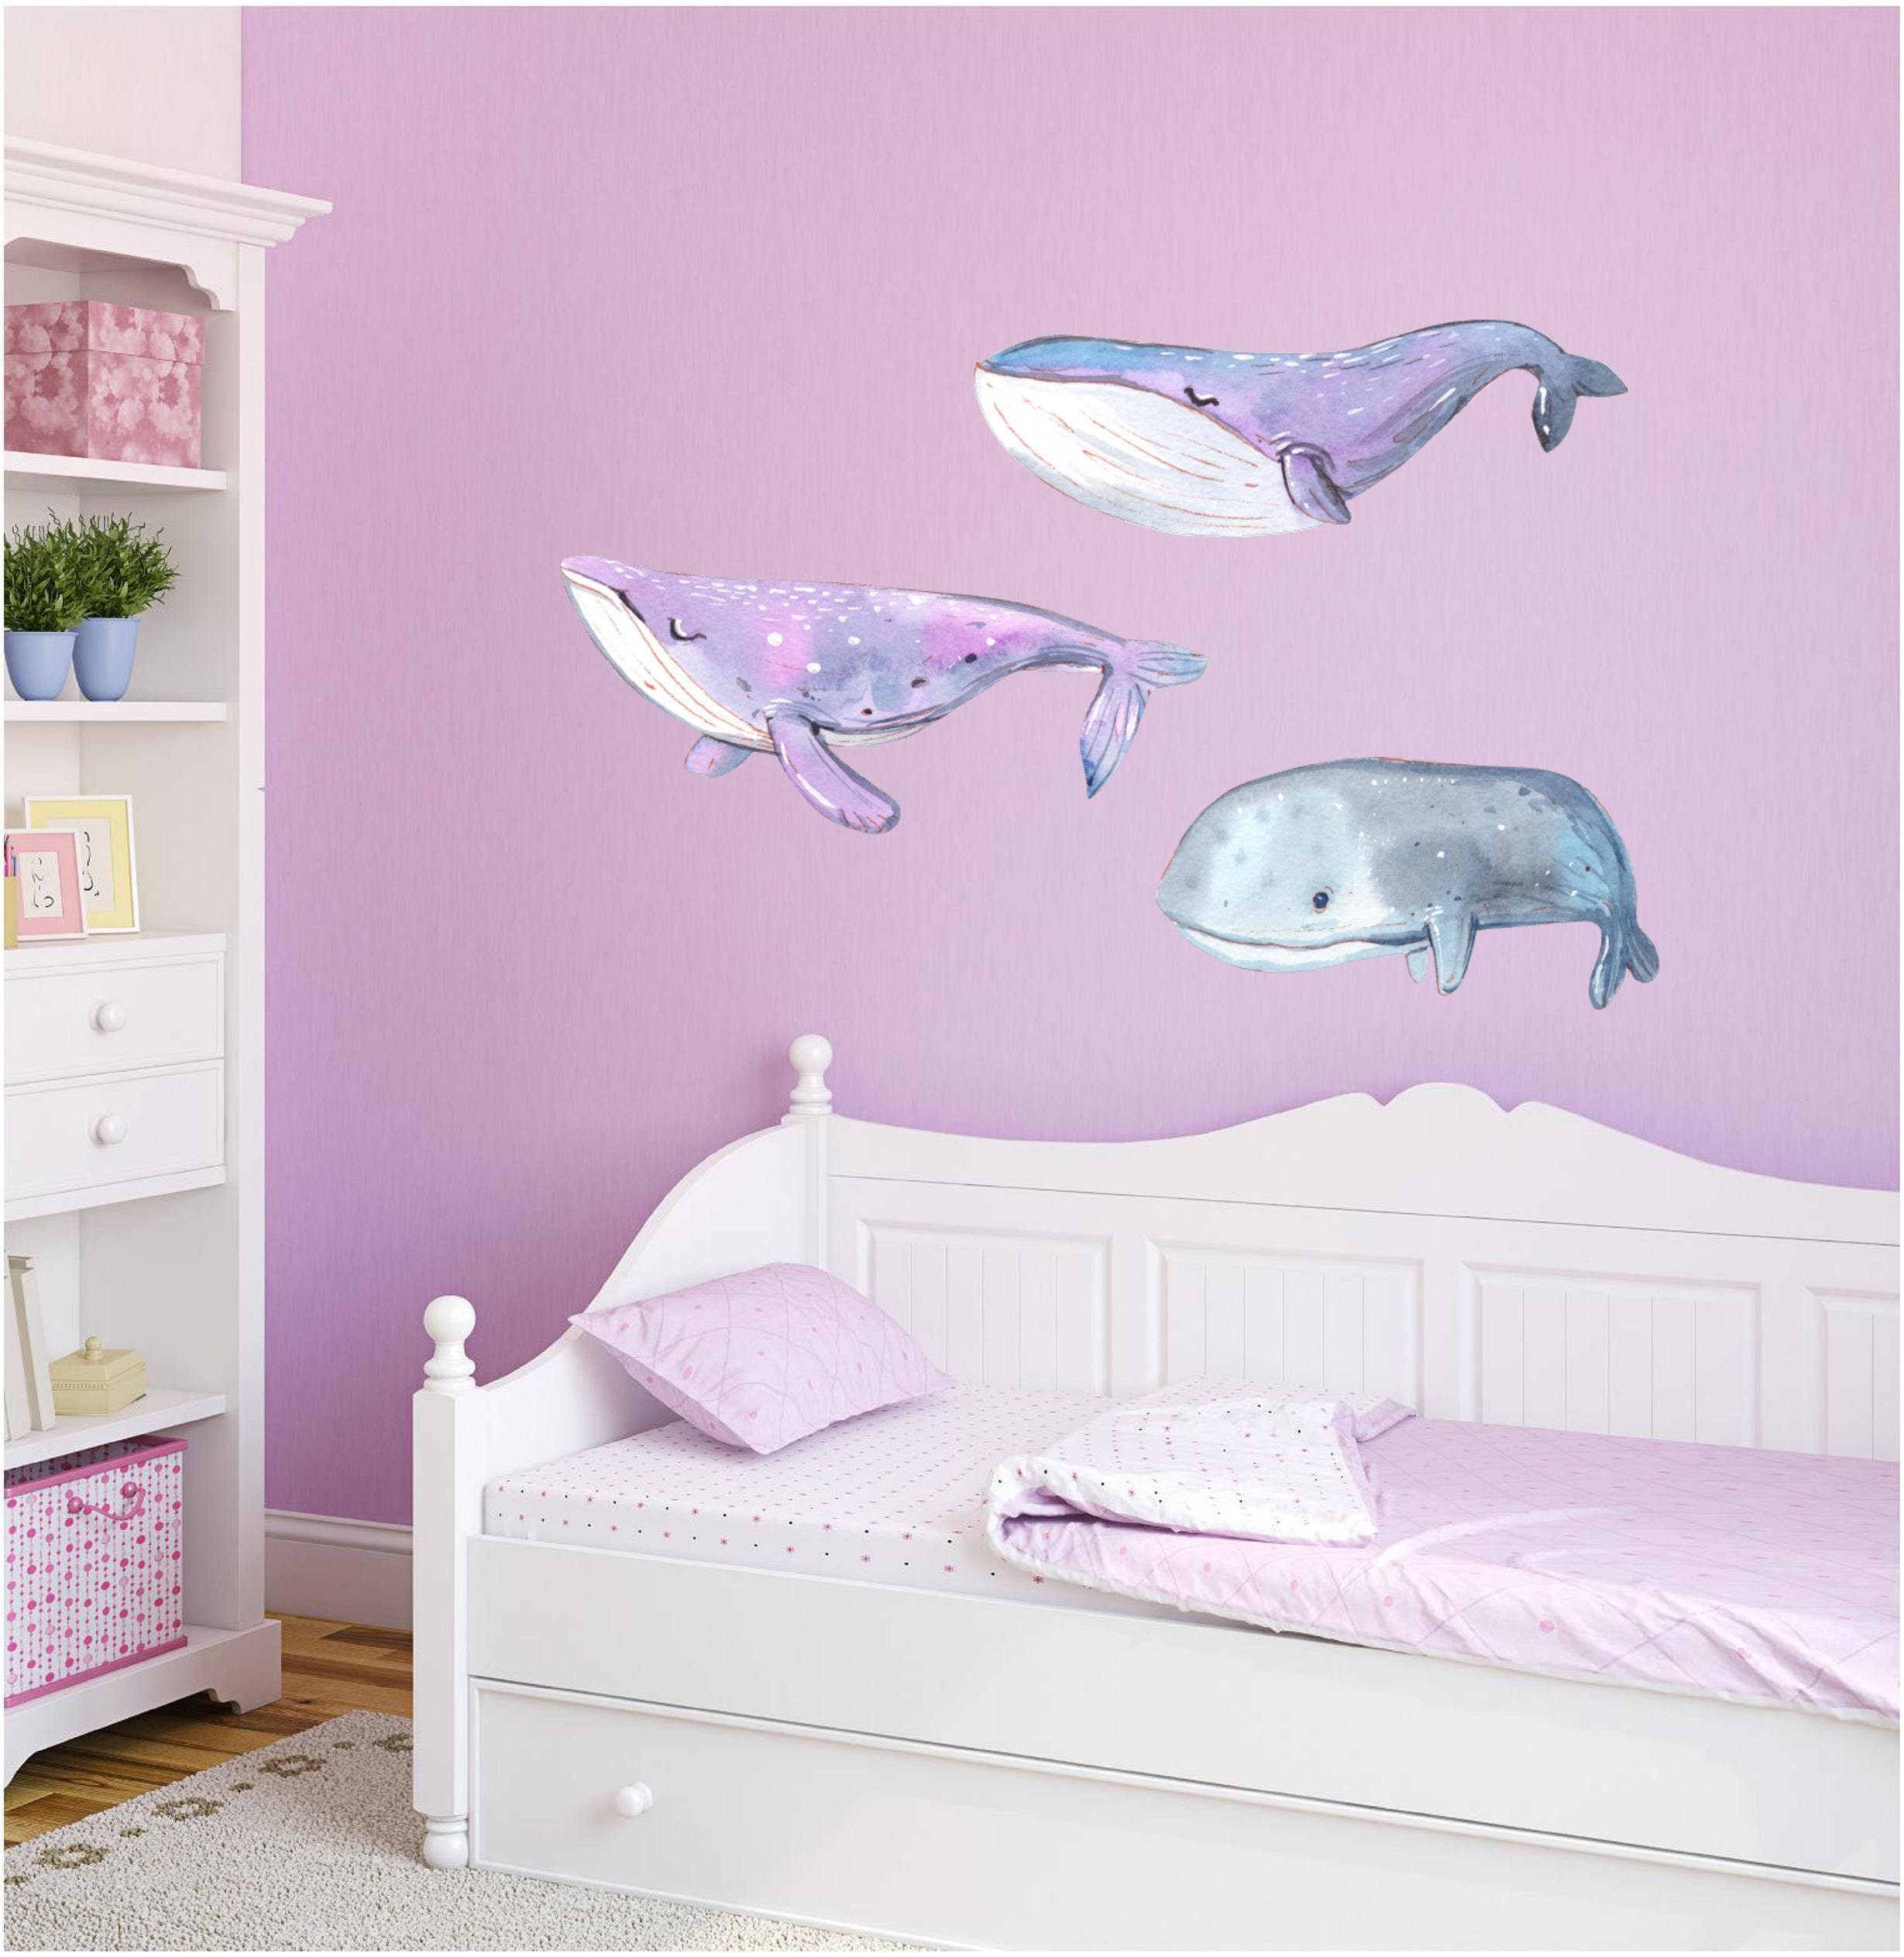 Orange Whale Wall Decal Watercolor Sea Ocean Wall Art Peel and Stick Wall Sticker Removable Fabric Vinyl Baby Girl Nursery Decor